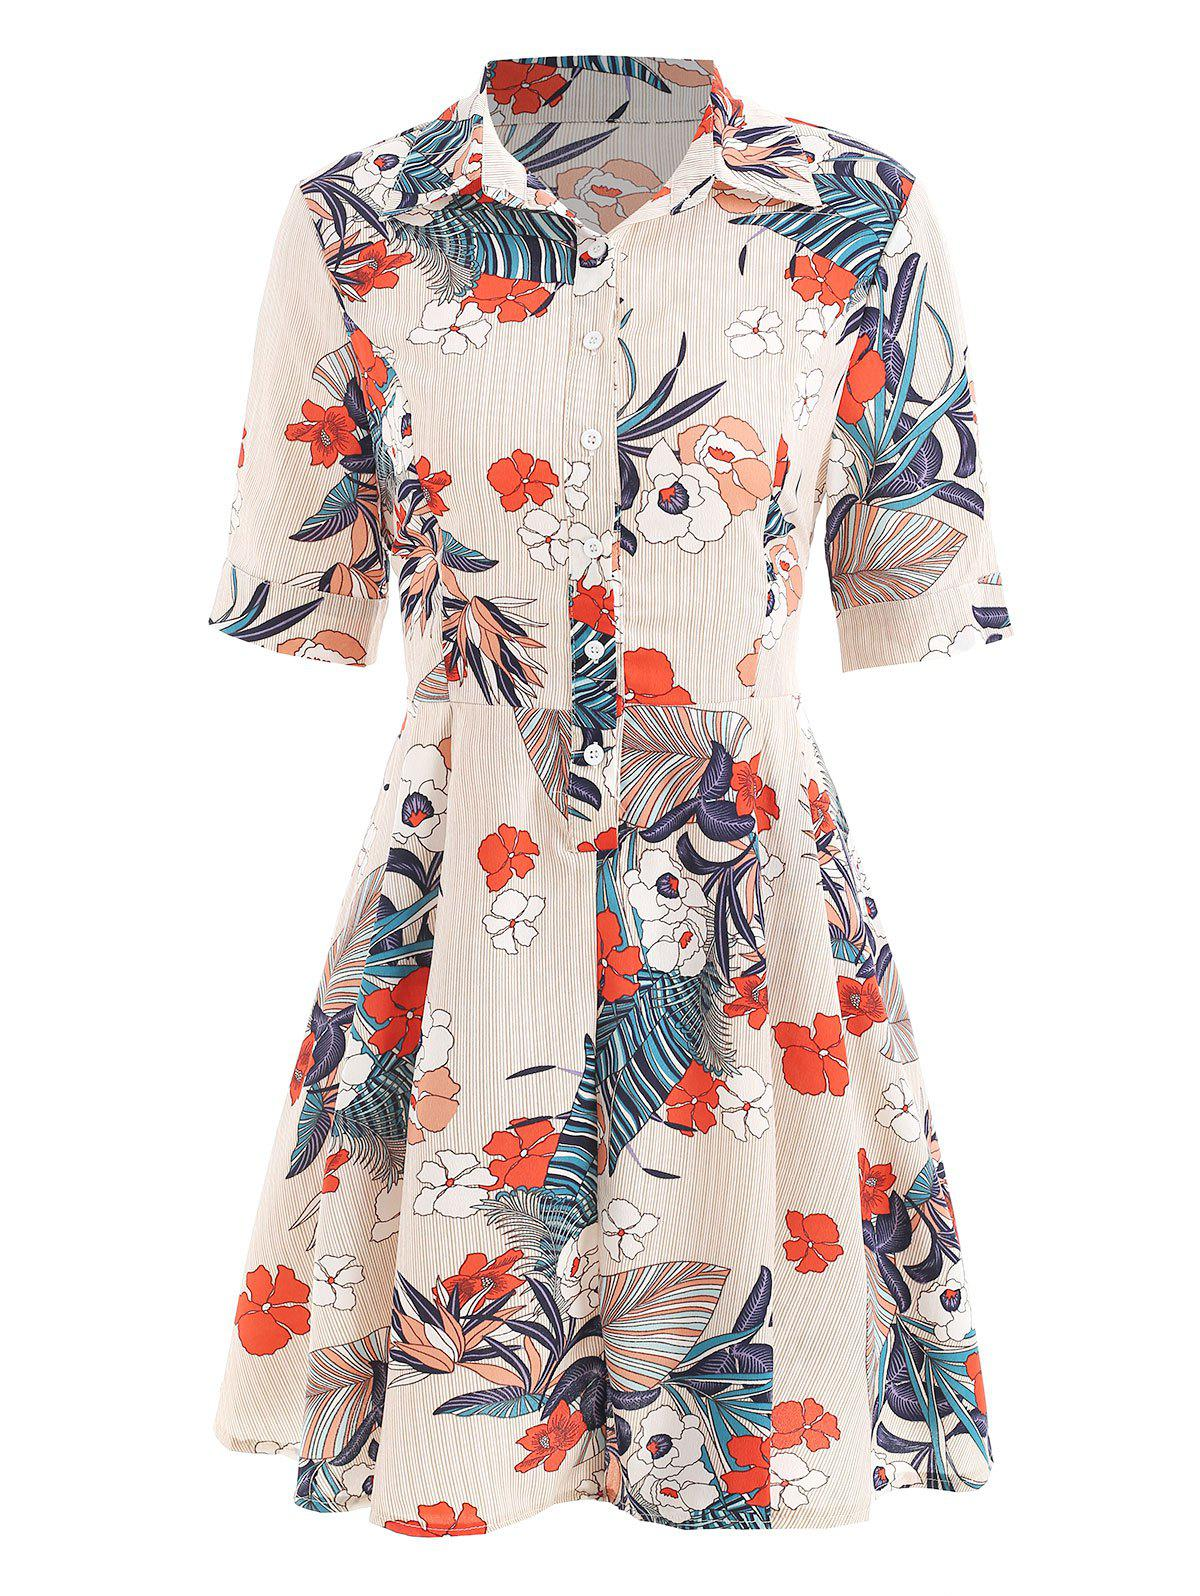 Buy Tie Knot Floral Print Dress